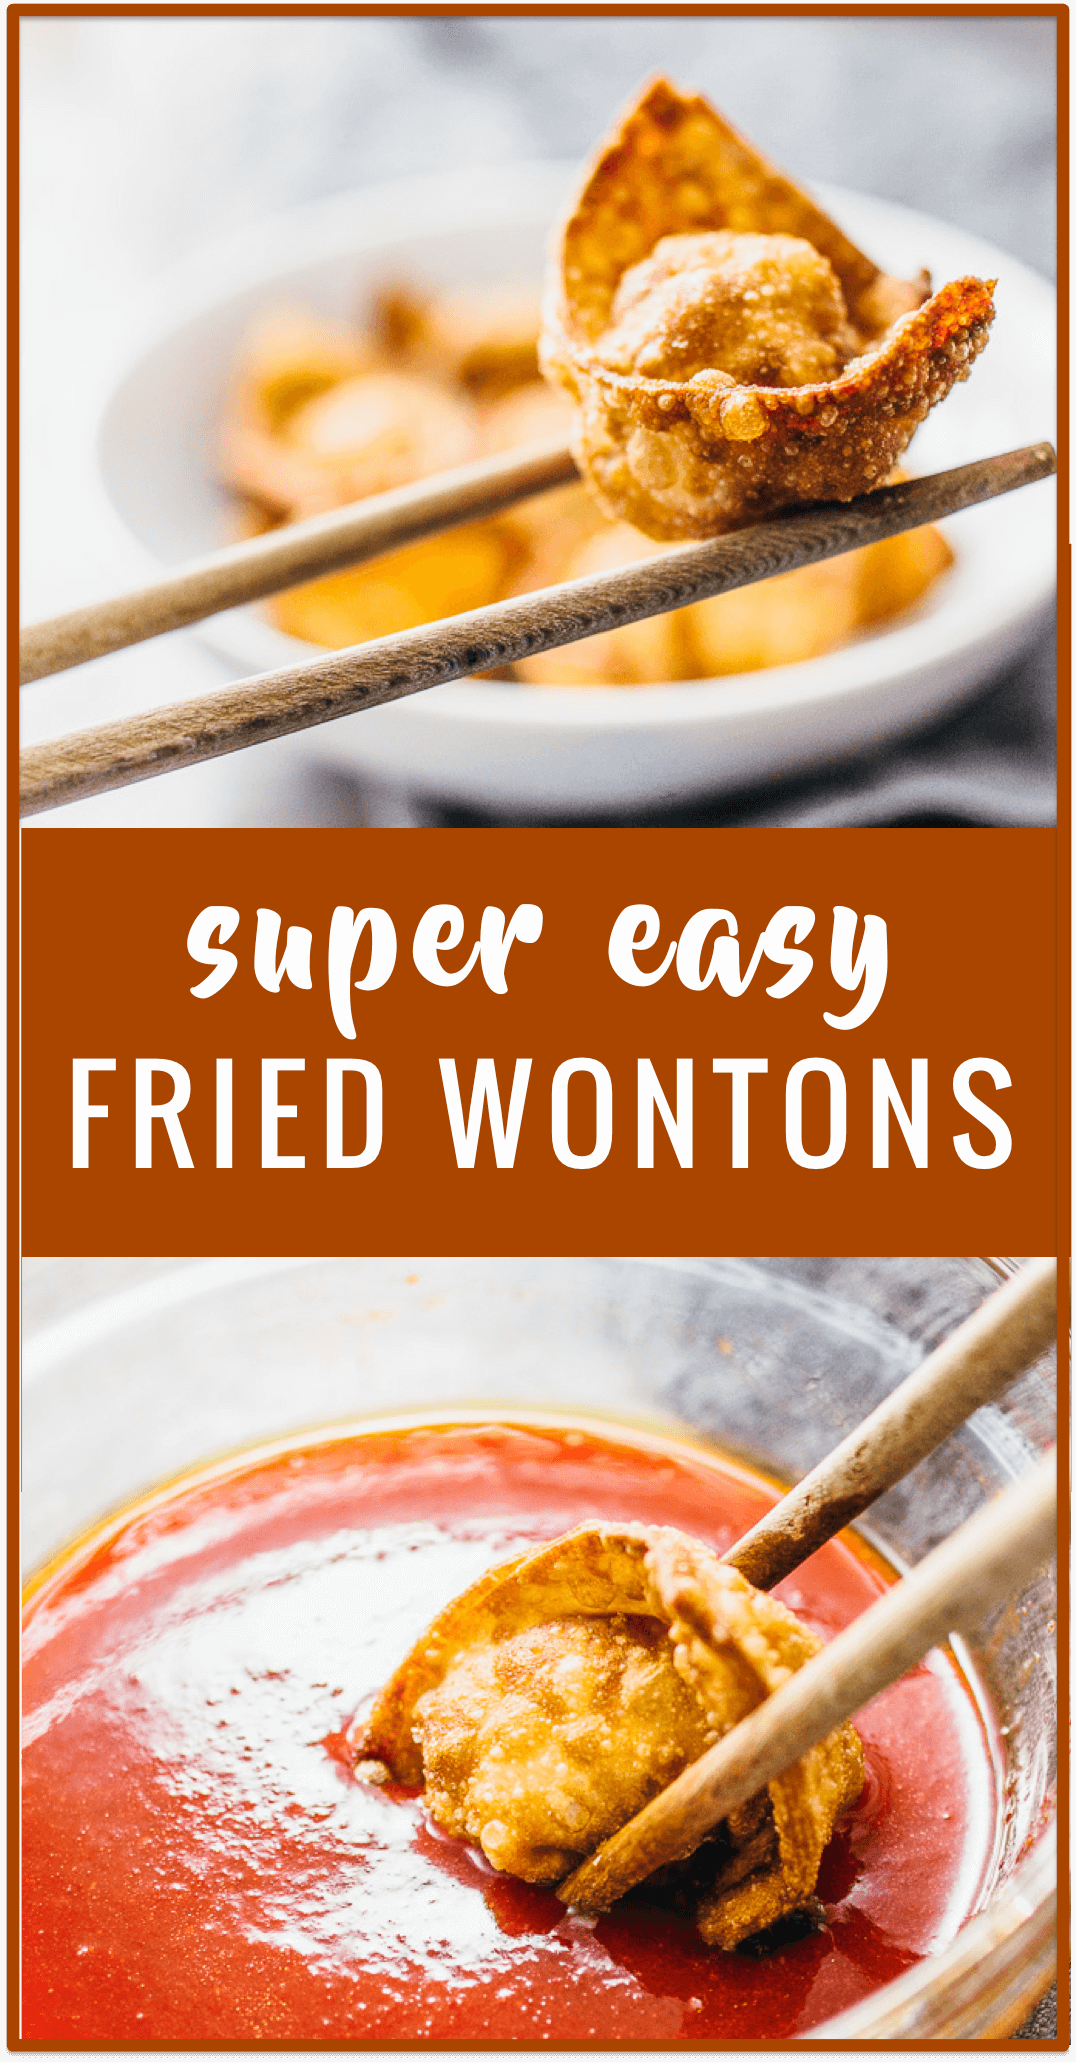 Super easy fried wontons recipe: These extra crispy fried wontons are a fun and delicious way to use up your leftovers by stuffing them into wonton wrappers and frying until crispy.